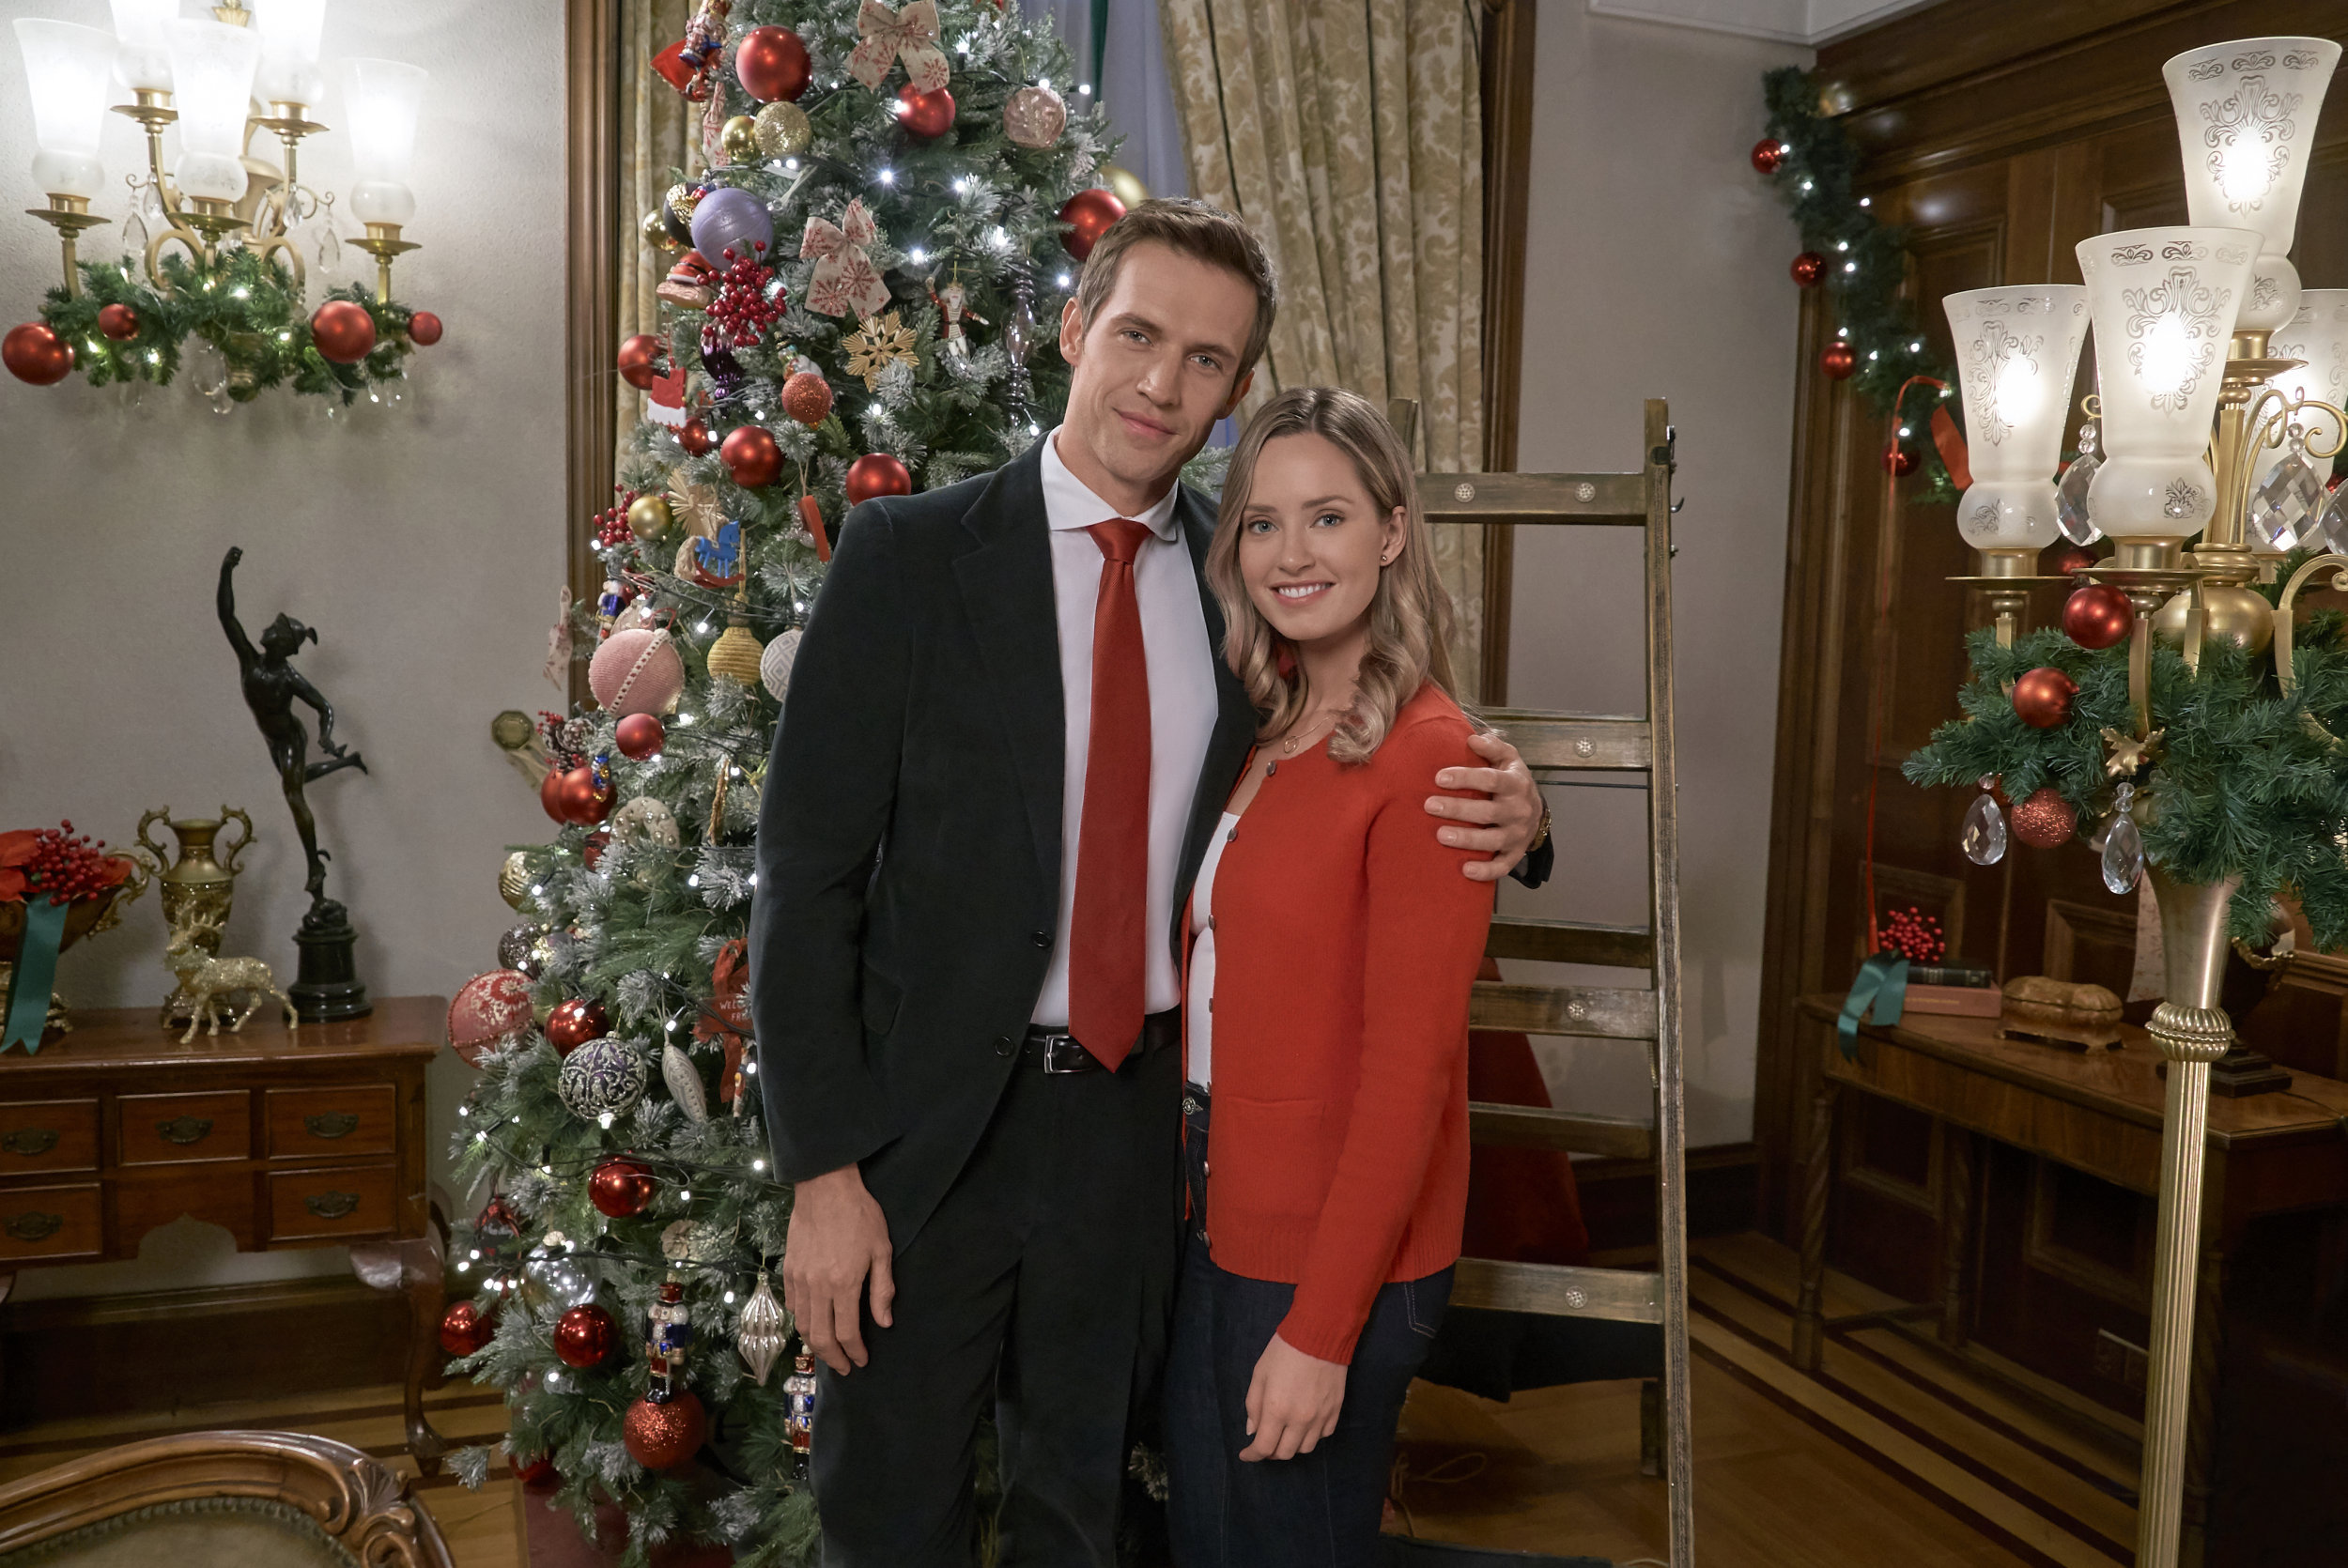 Christmas At The Palace.Christmas At The Palace Cast Hallmark Channel